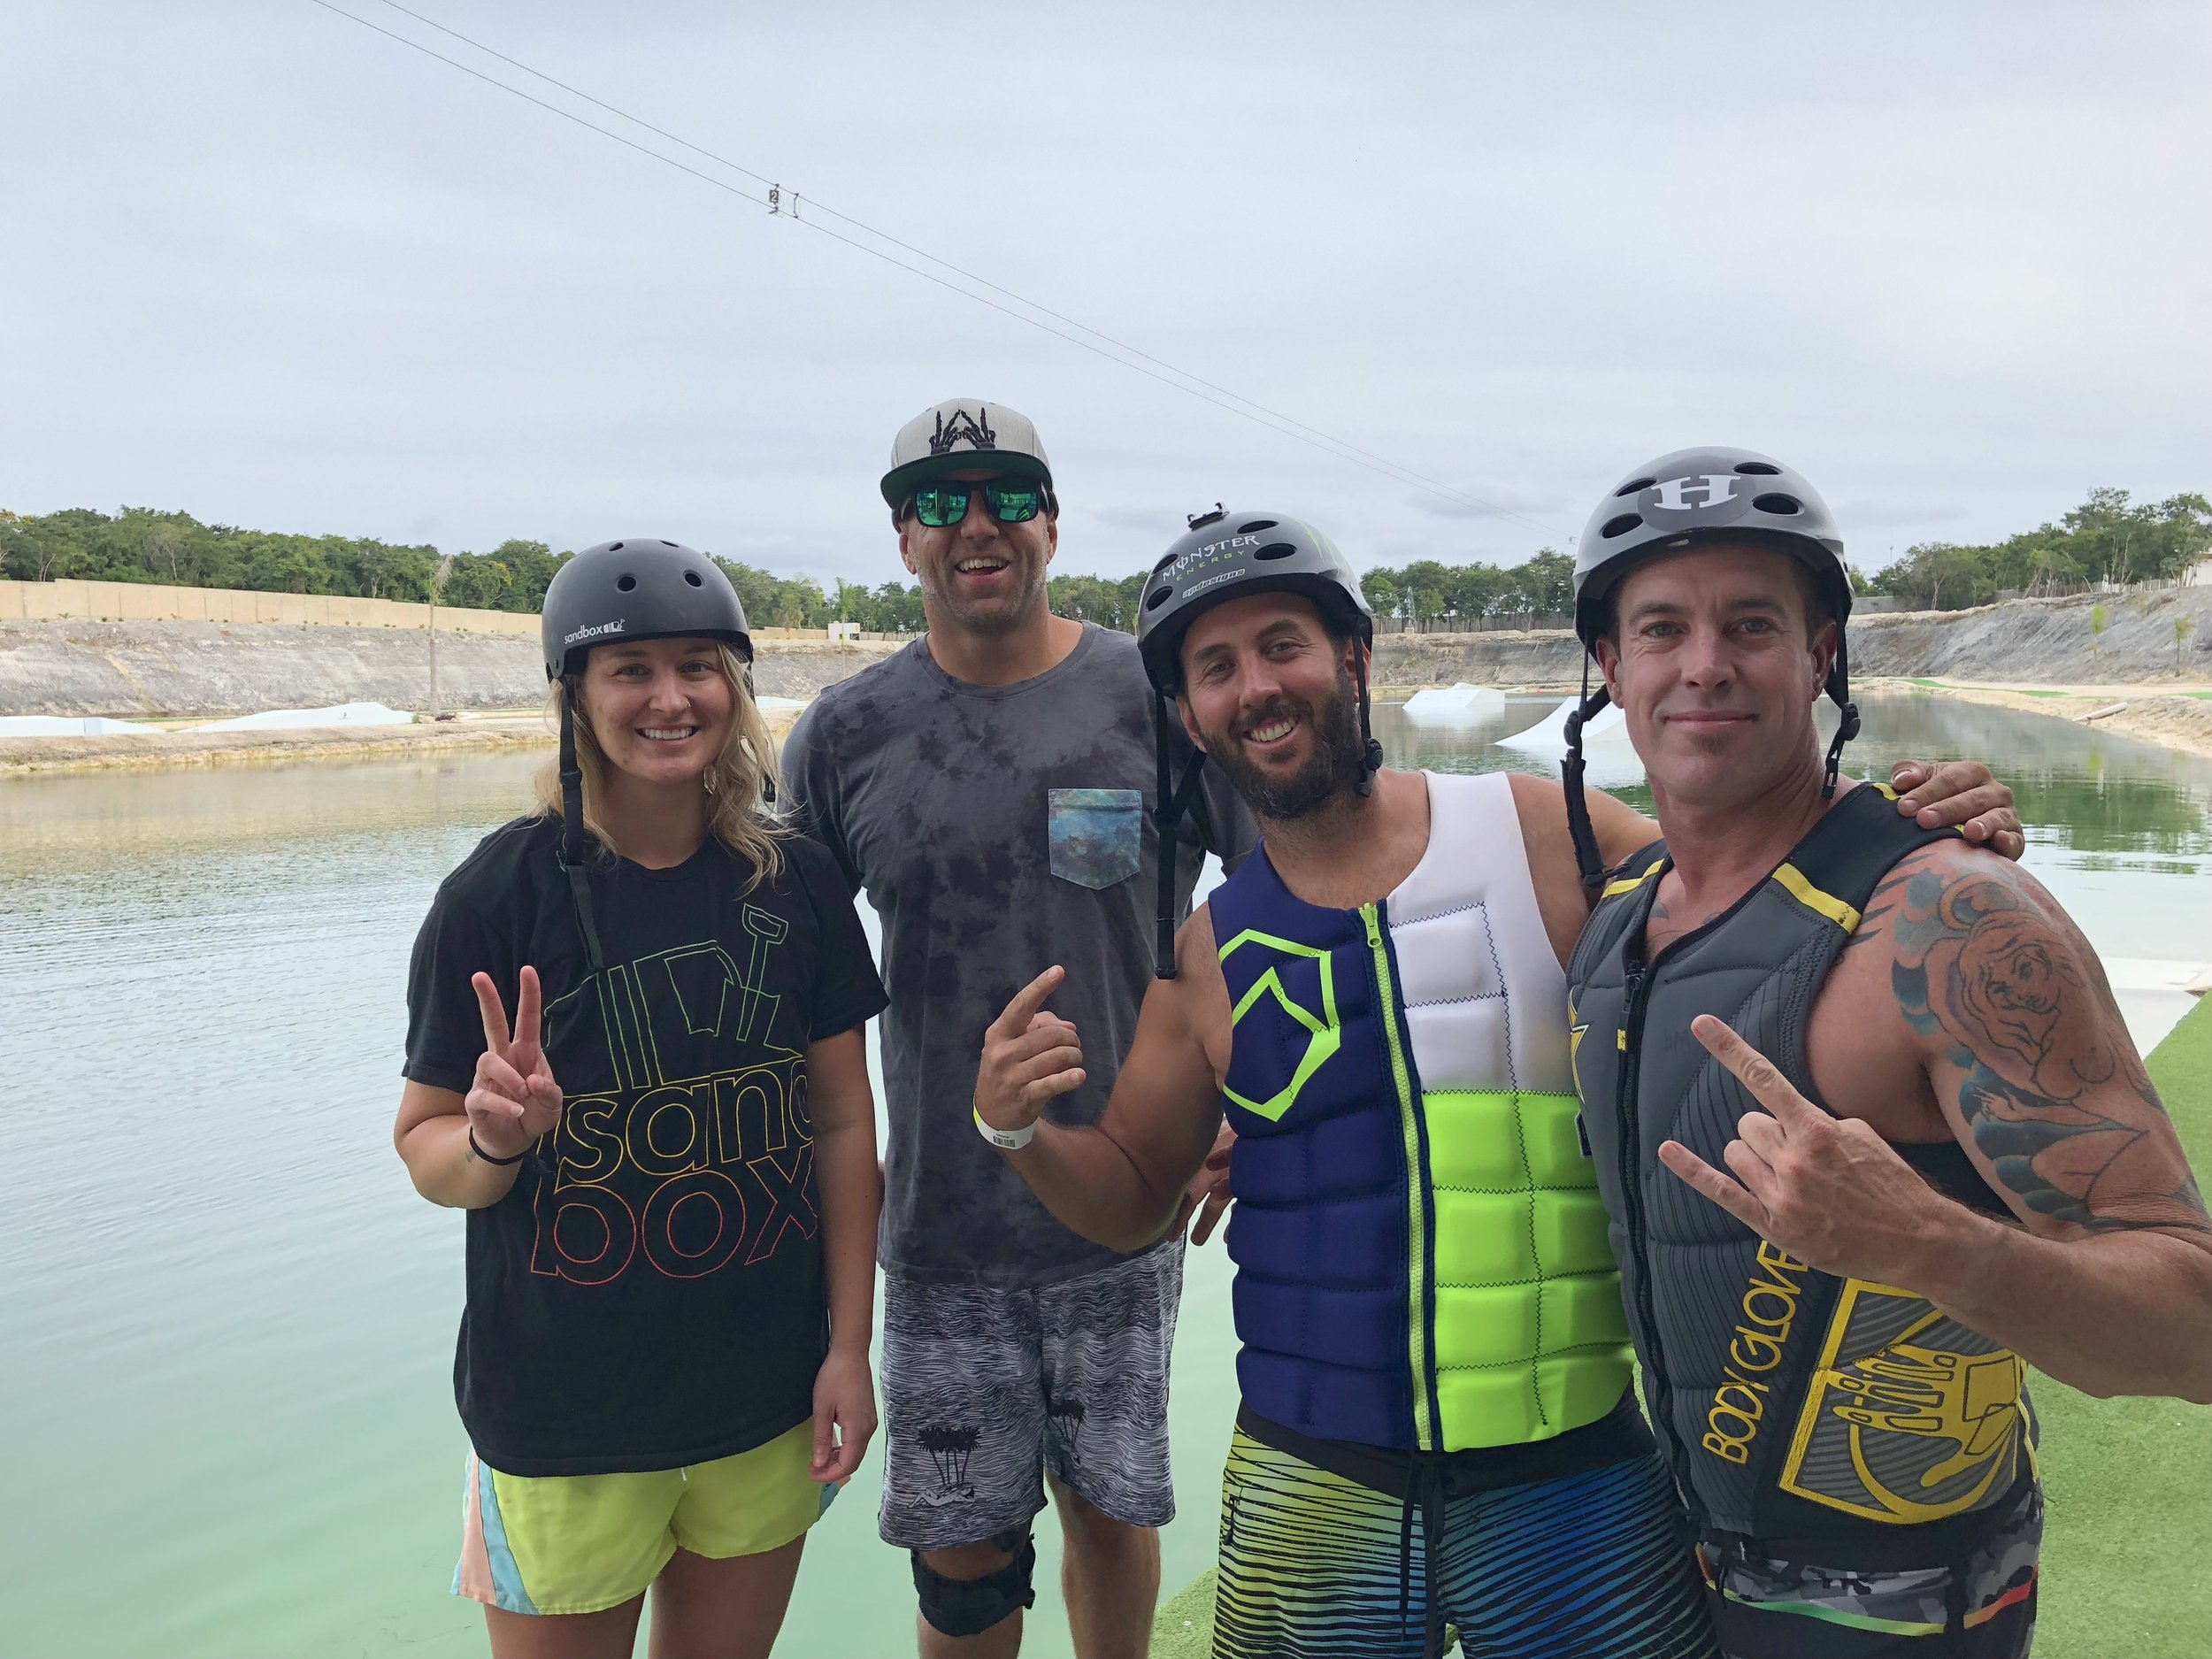 Chad Lowe Corporate Clinic Wakeboarding